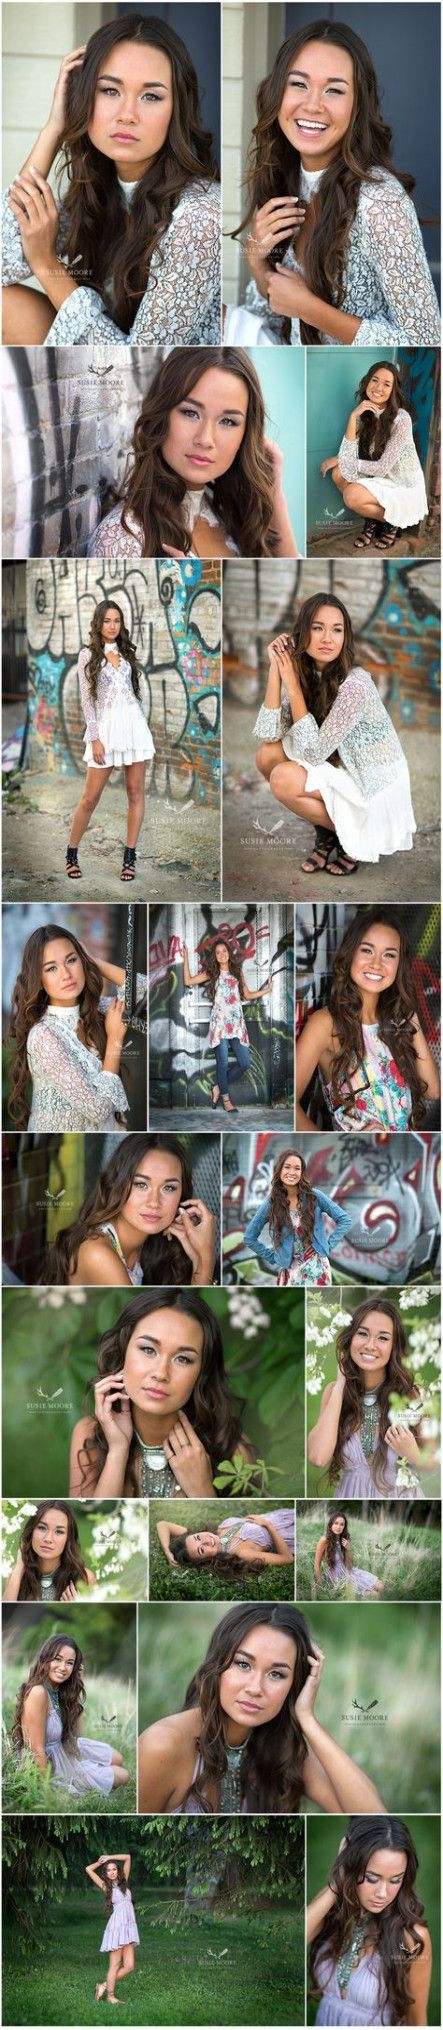 Photography girl poses natural angles 52 trendy ideas  Photography Journal